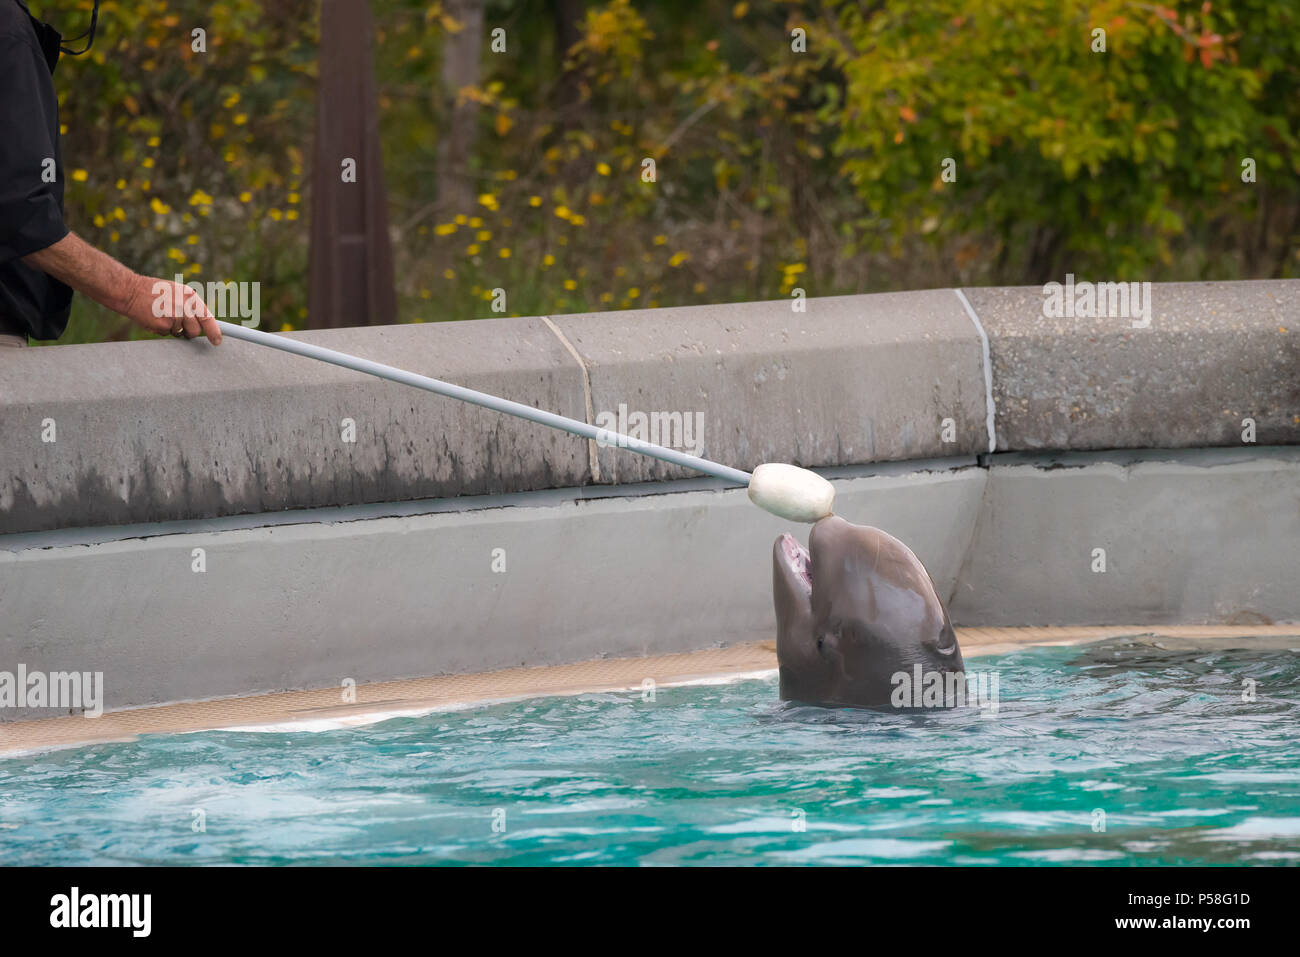 A very young beluga who was mimicking the adults during a training session at Marineland Canada, so the trainer held the target out so it could play. - Stock Image